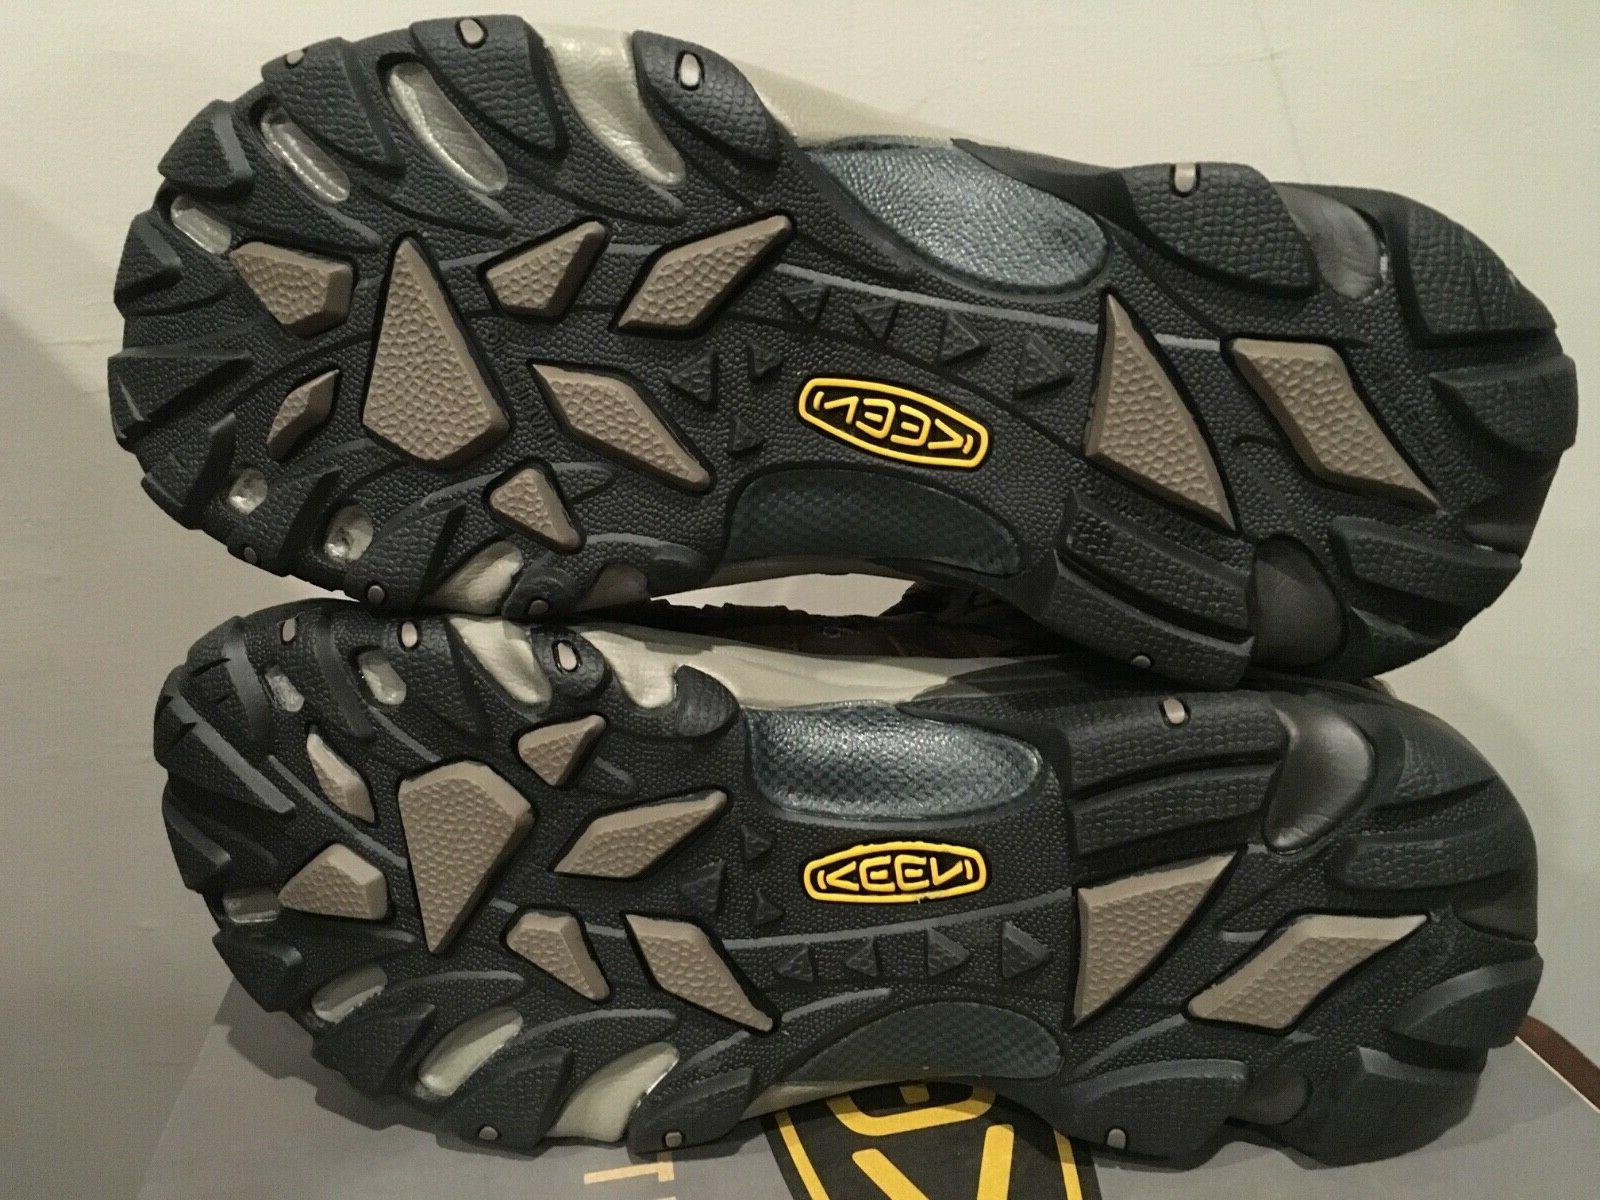 Cody Keen Utility safety hiker shoe 1021357 wide